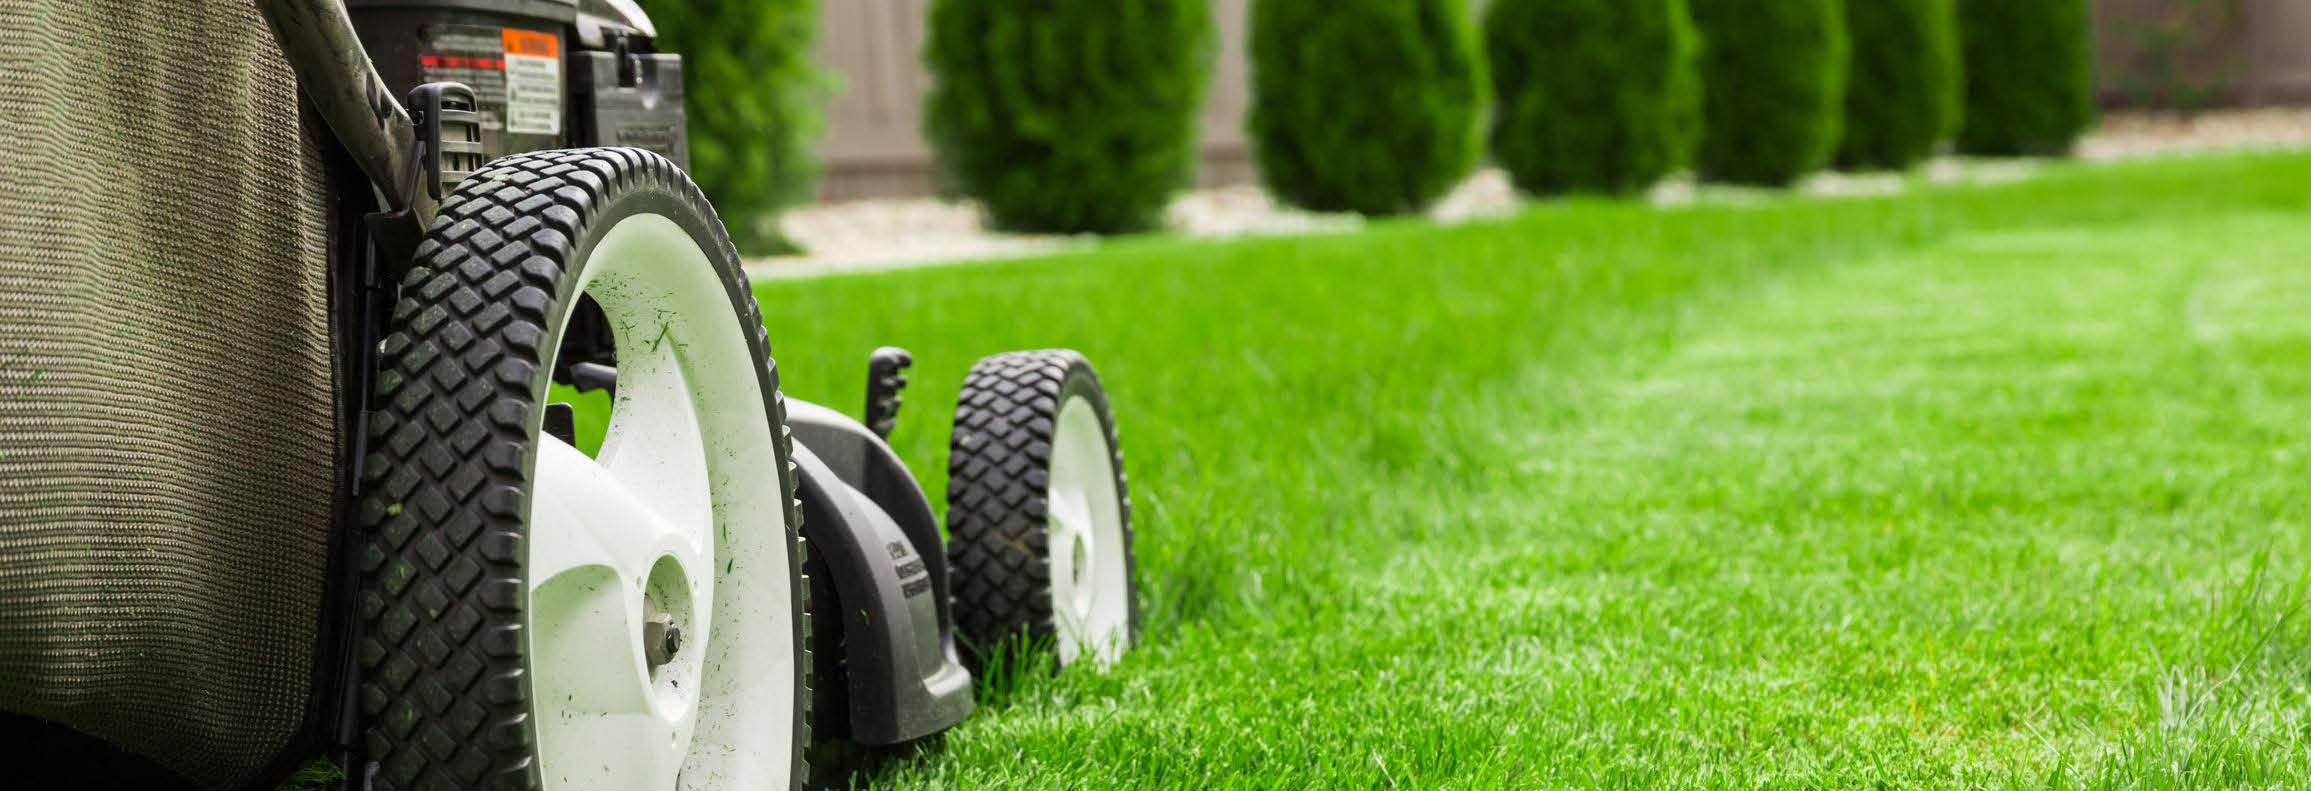 lawn mower,lawn tractor,riding lawn mower,lawn mower repairs